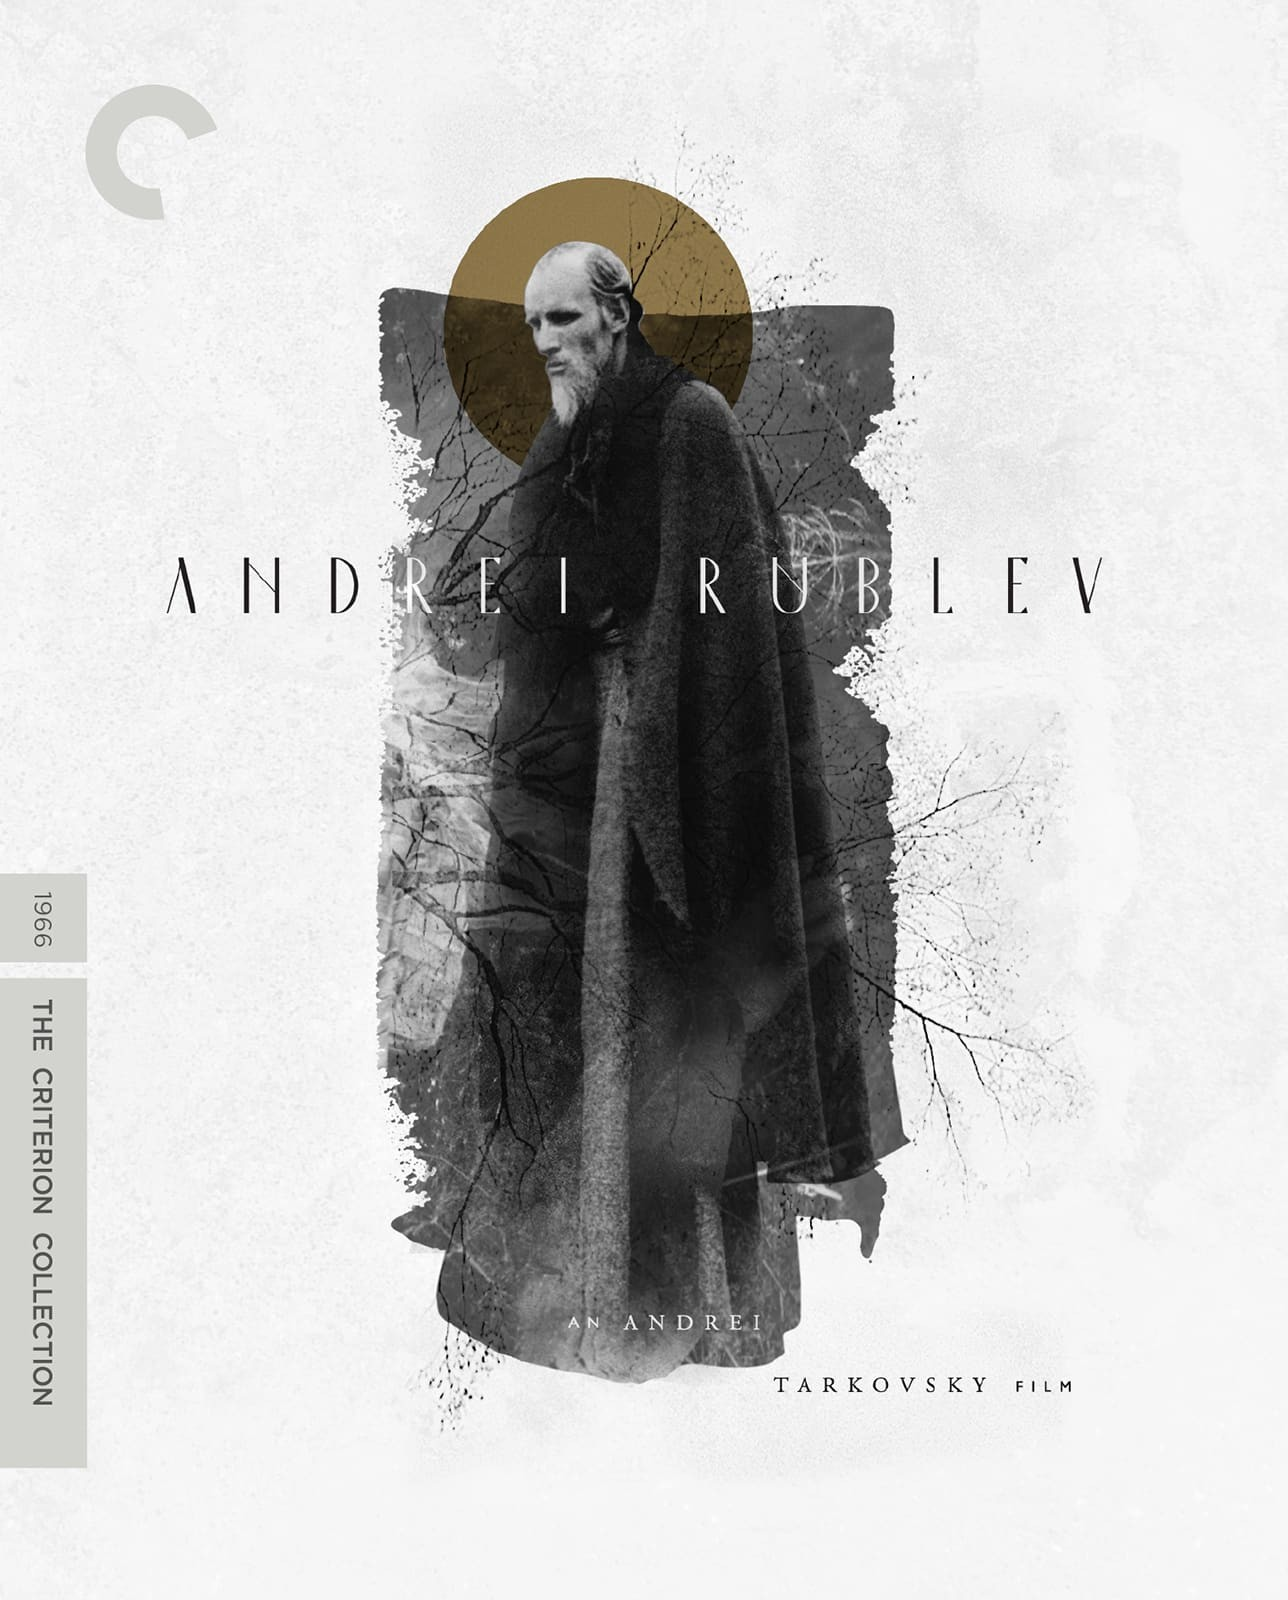 Andrei Rublev movie cover art for Criterion Collection